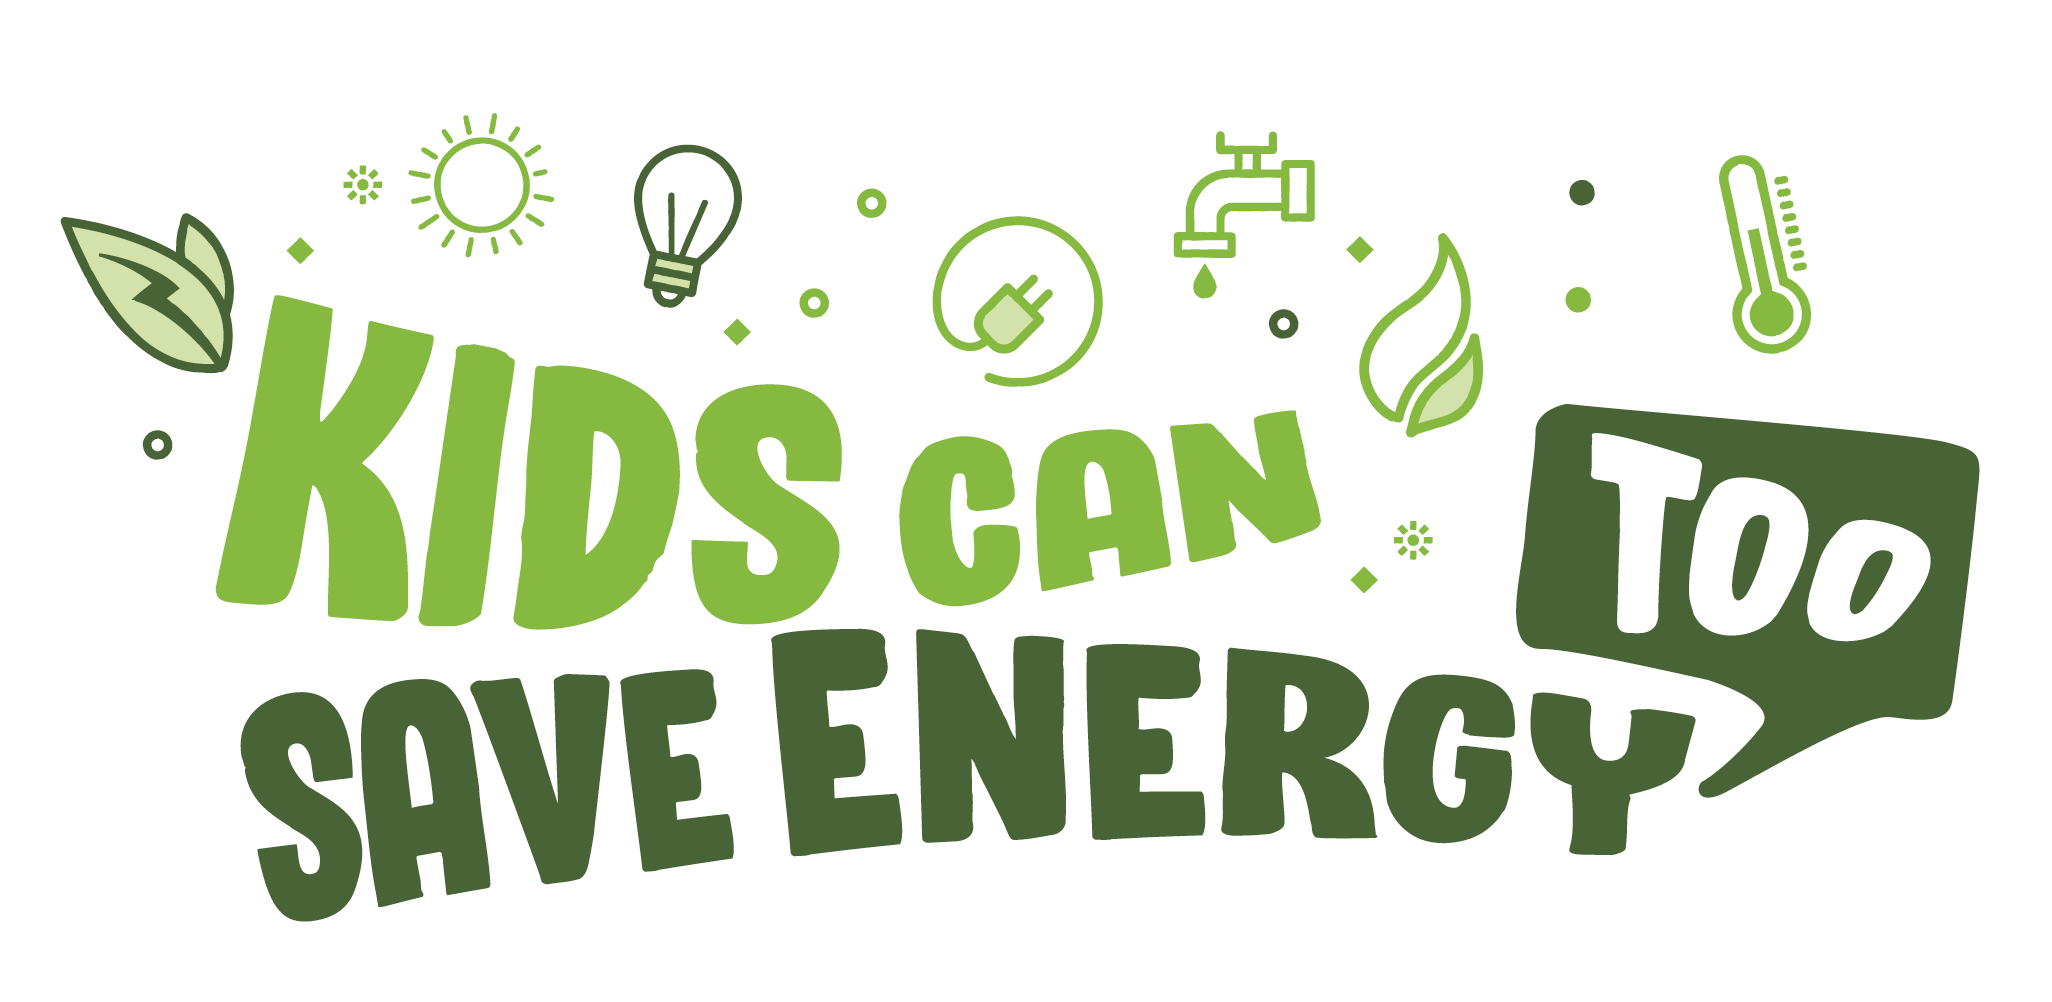 Kids can save energy too